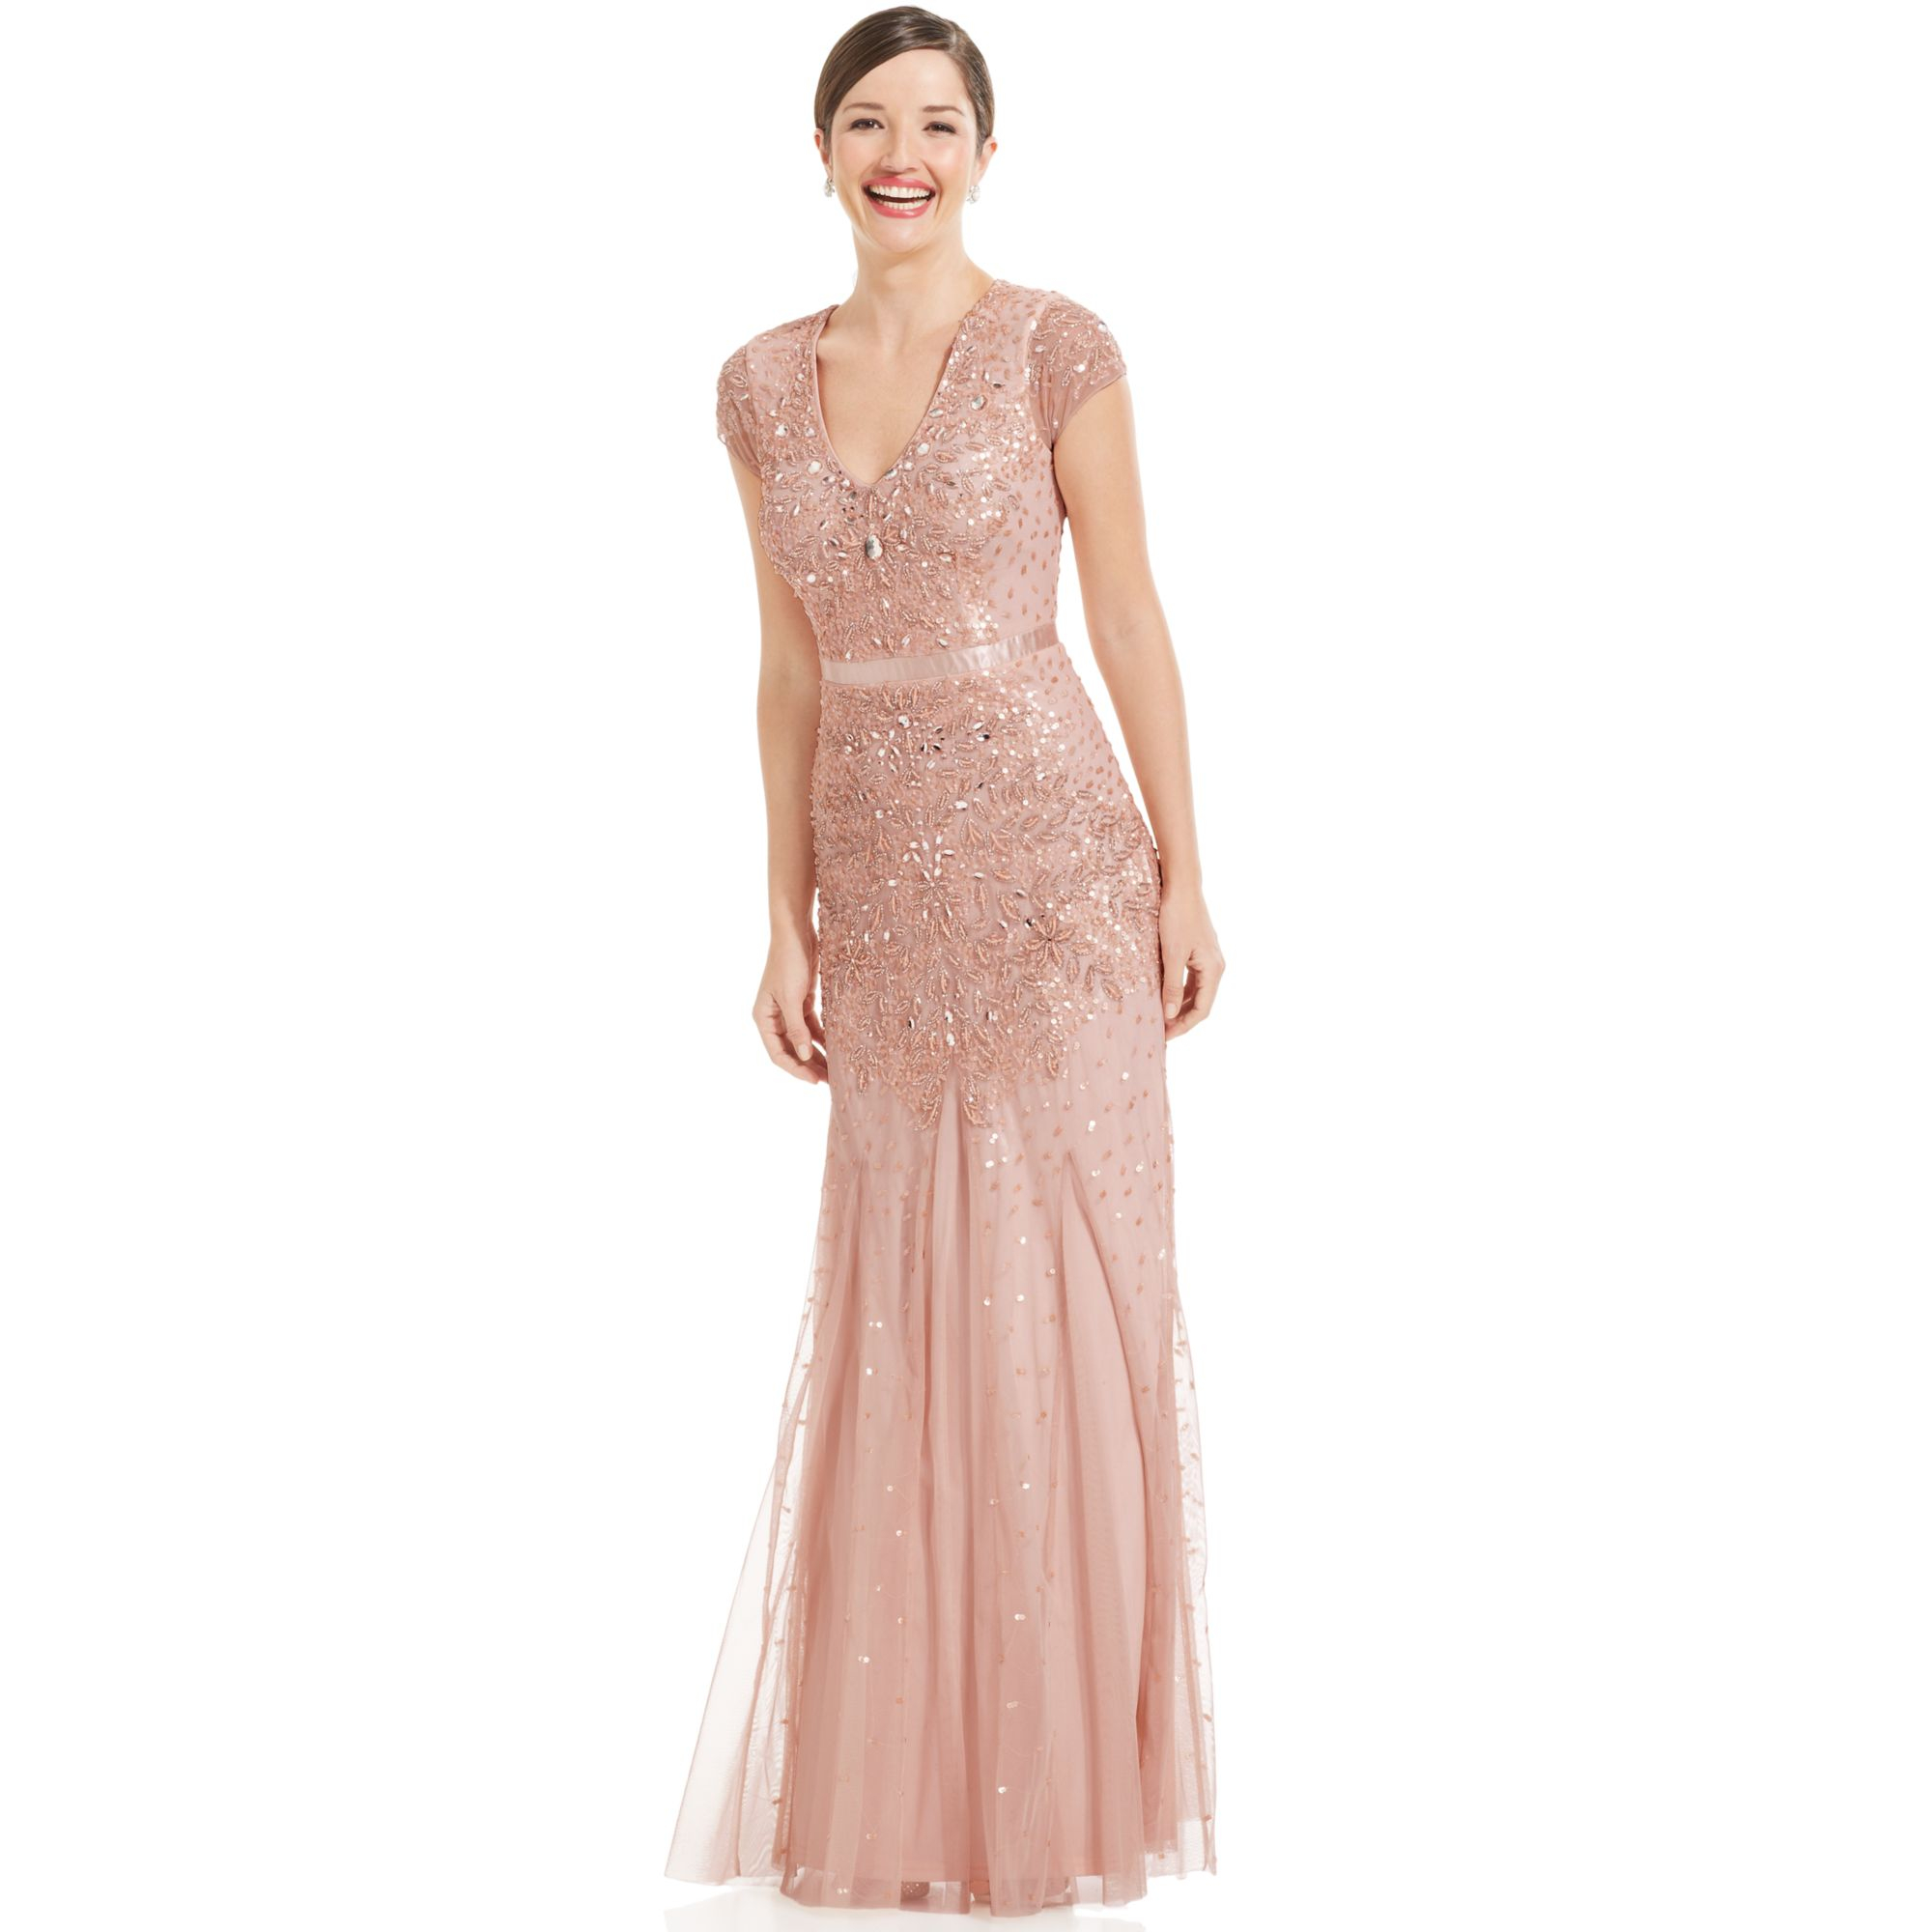 Adrianna papell cap sleeve embellished gown in pink blush for Macy wedding dresses mother of the bride